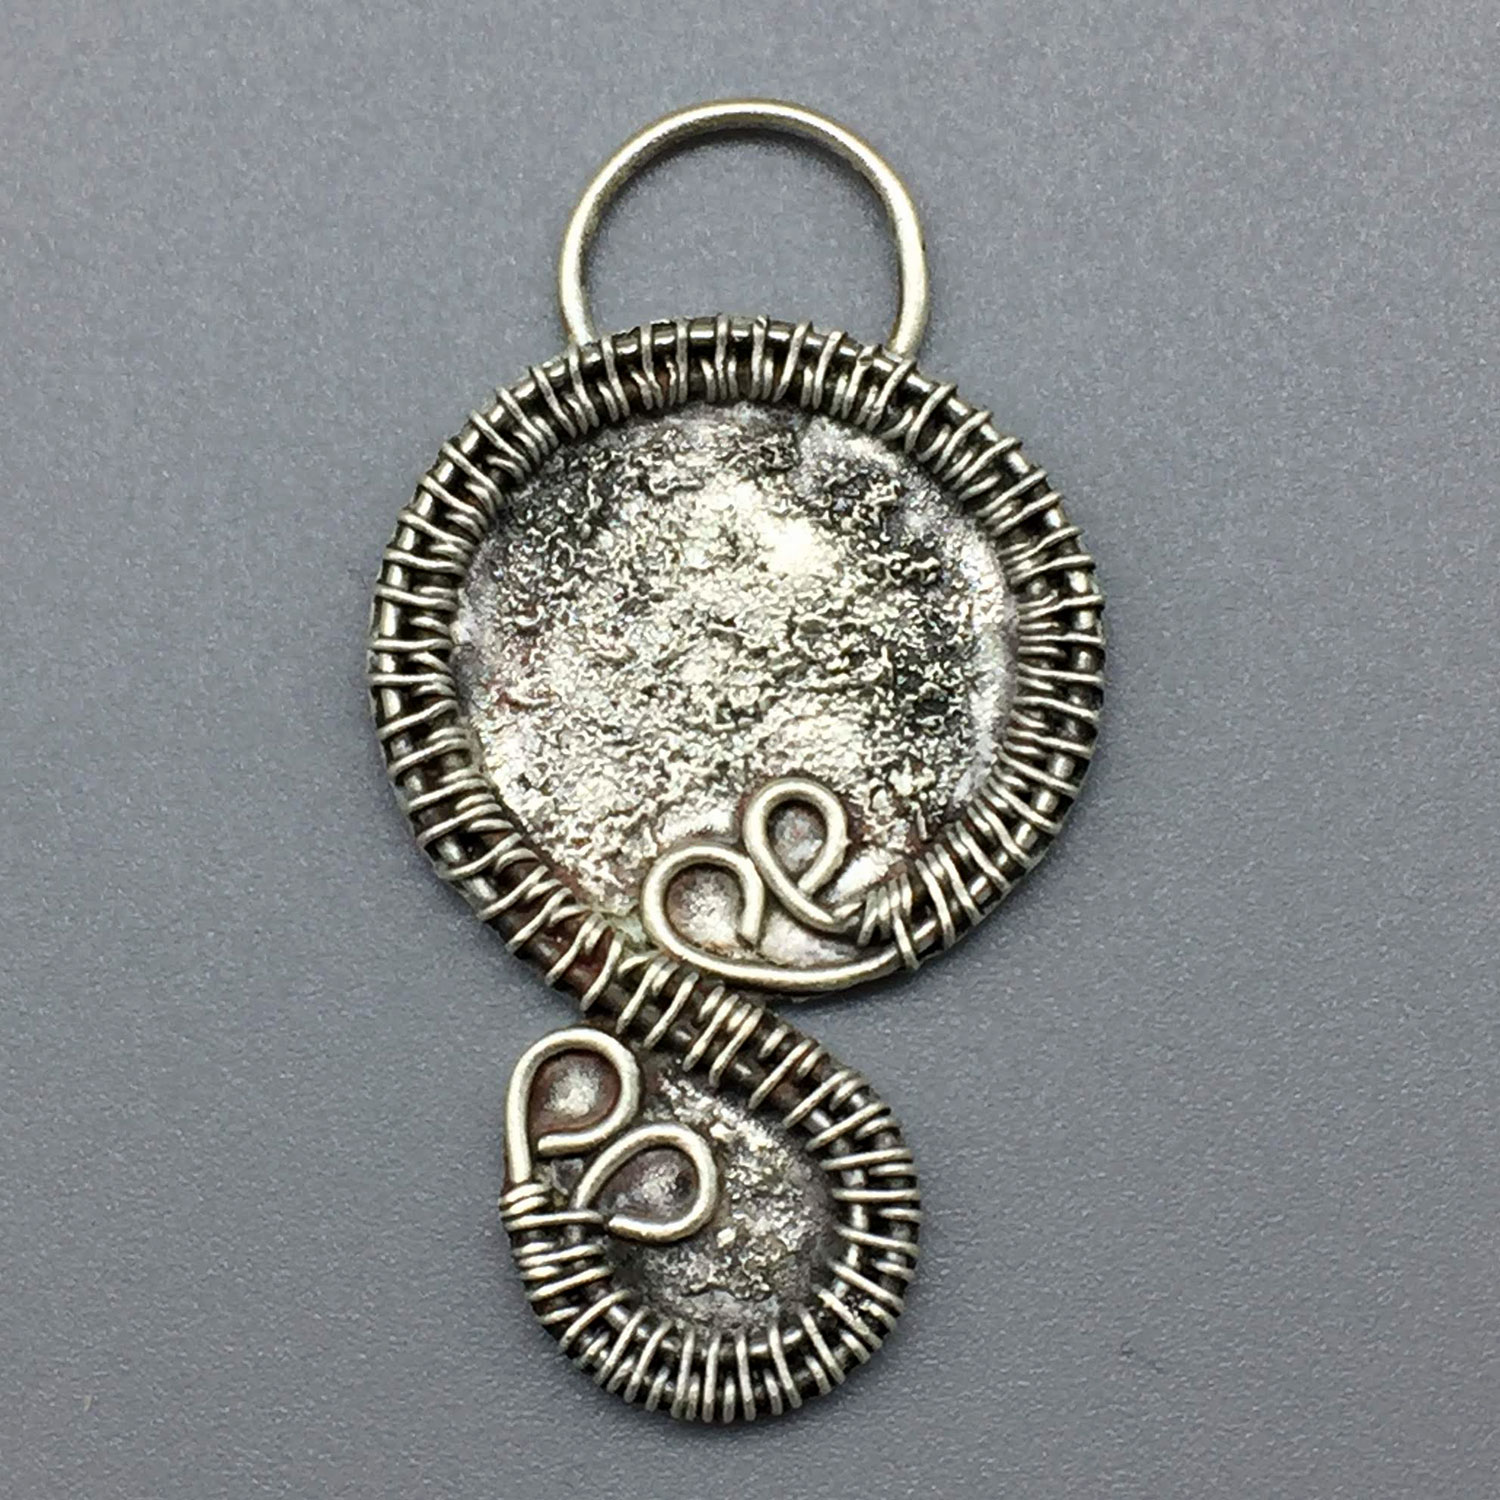 Integrating Wire Wrapping into Metalsmithing